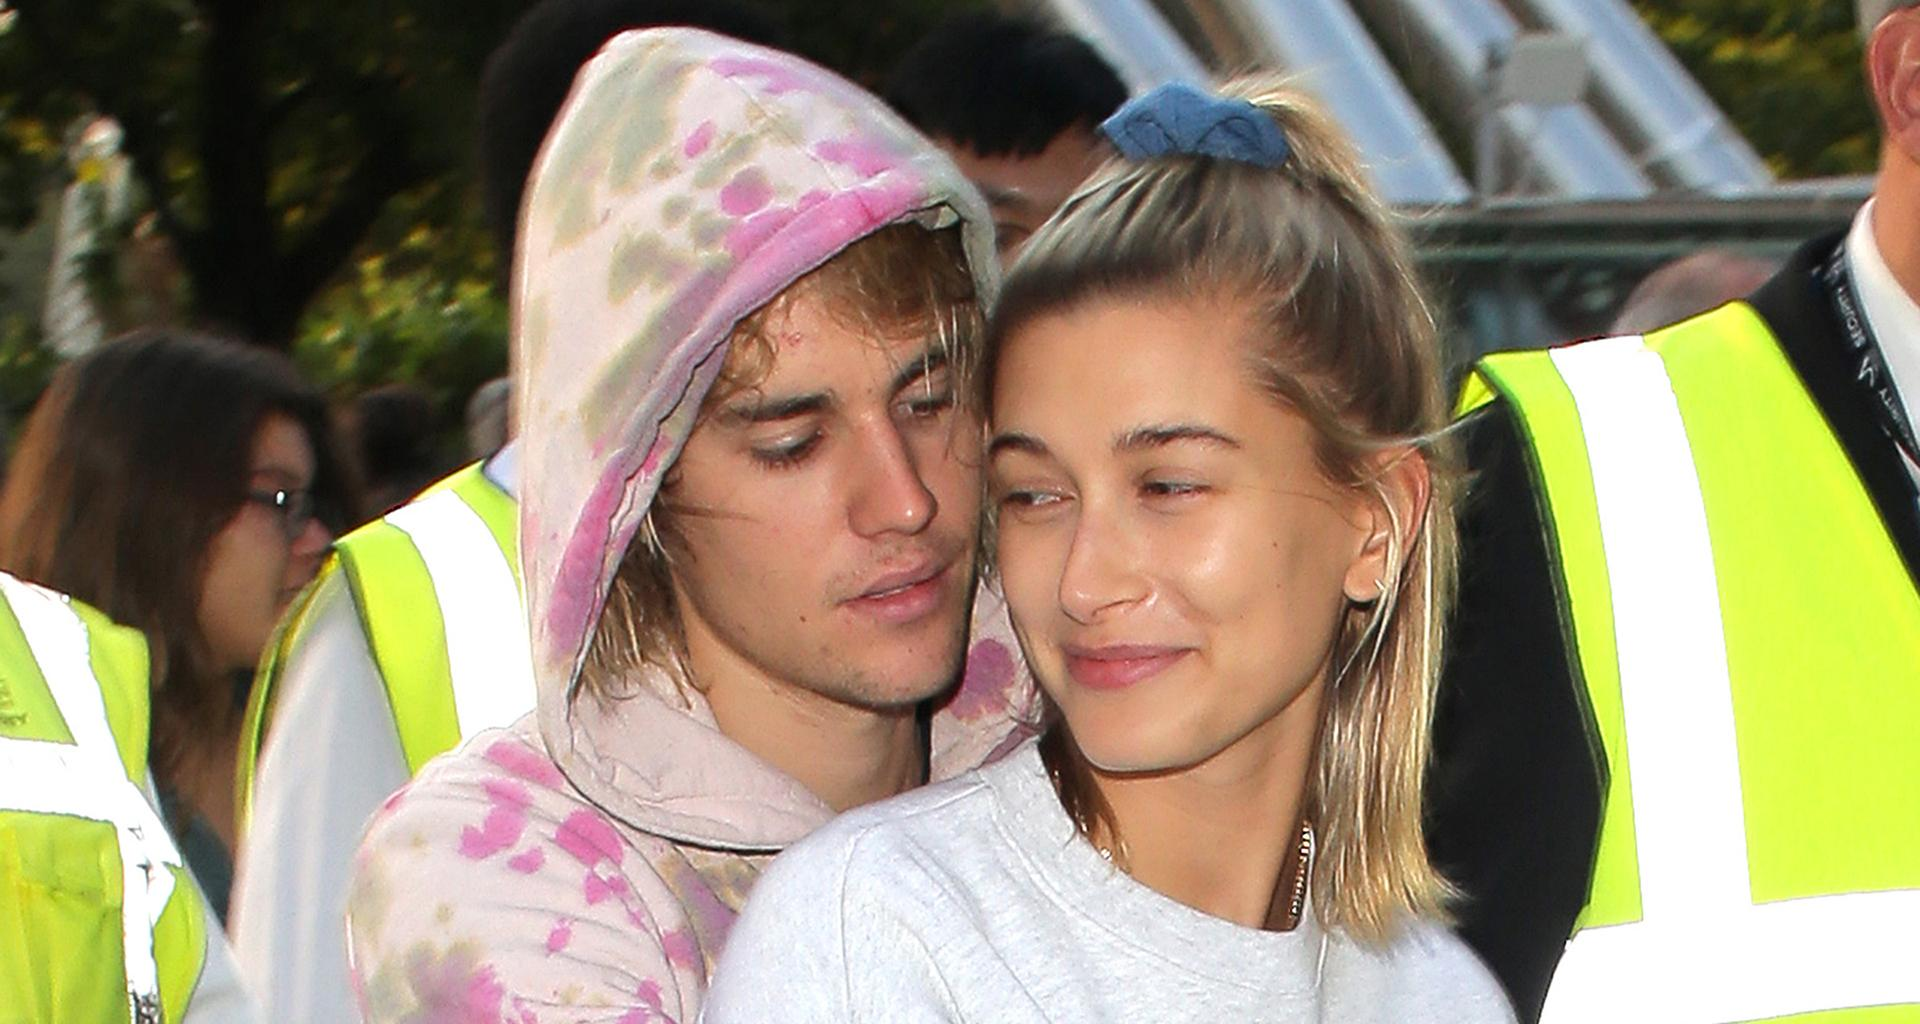 Justin Bieber Might Cry On His And Hailey Baldwin's Wedding - He's 'Overjoyed With Emotions'